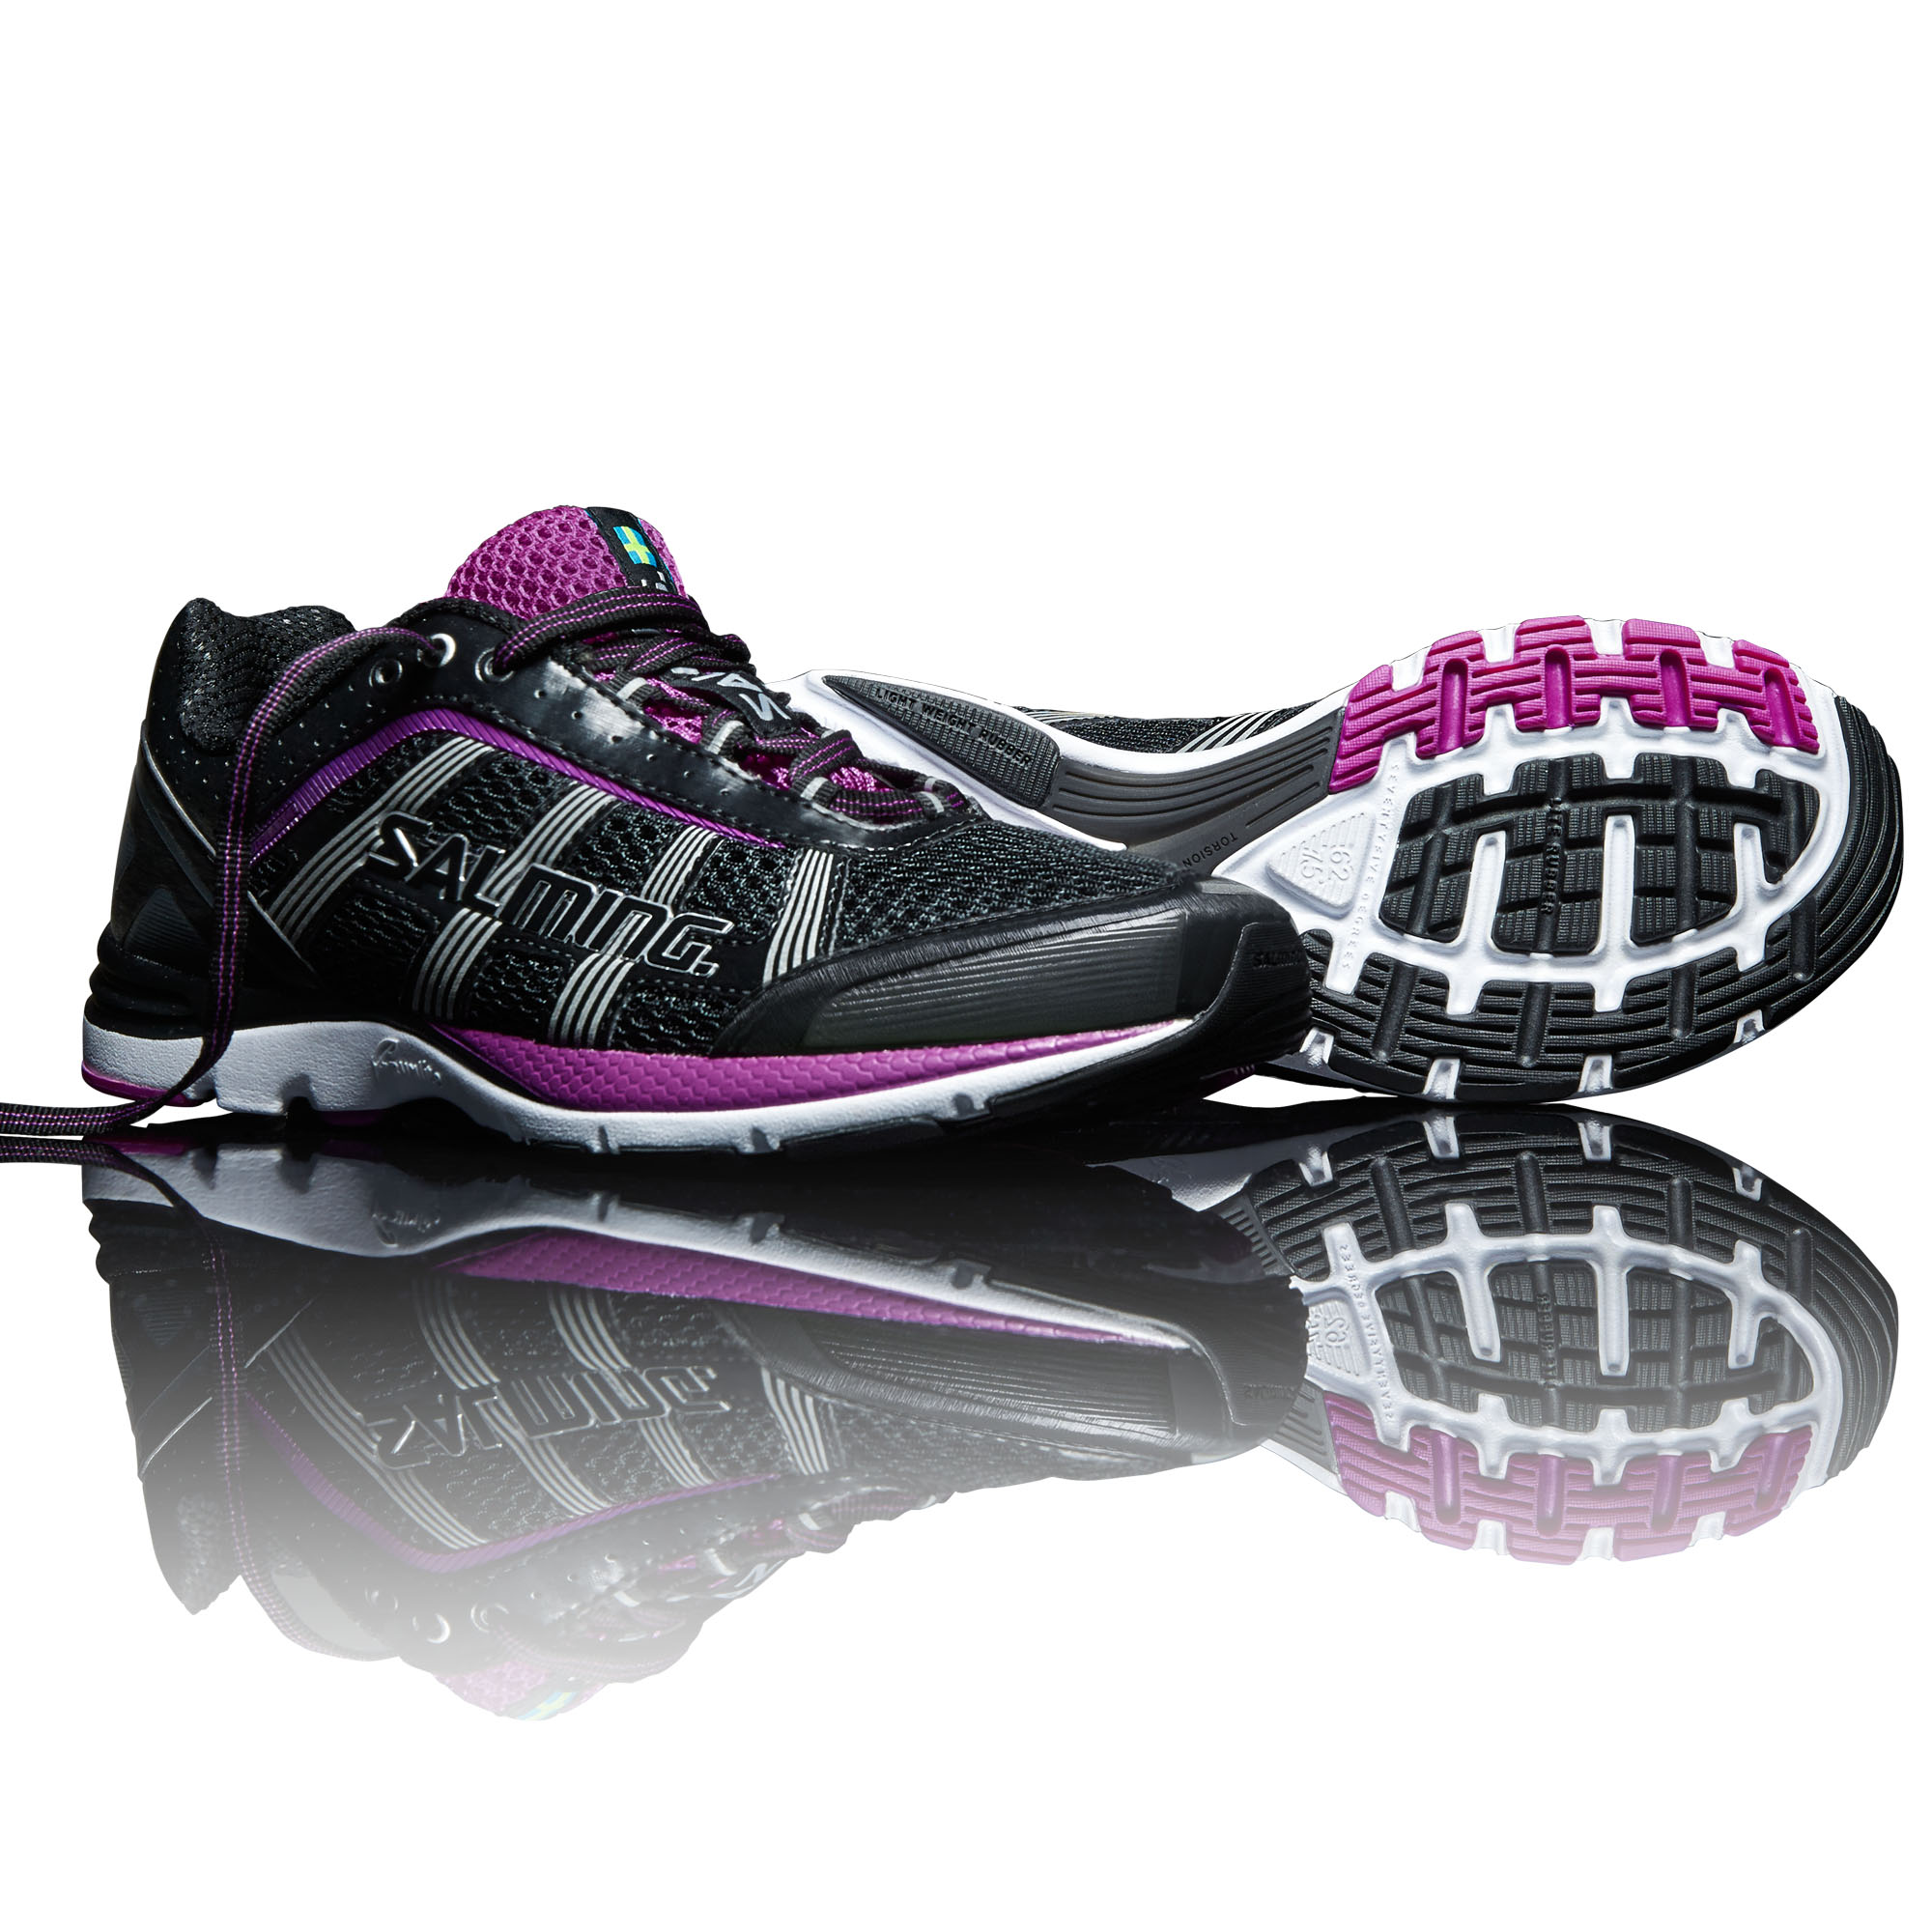 Salming Distance A2 Ladies Running Shoes - 4.5 UK